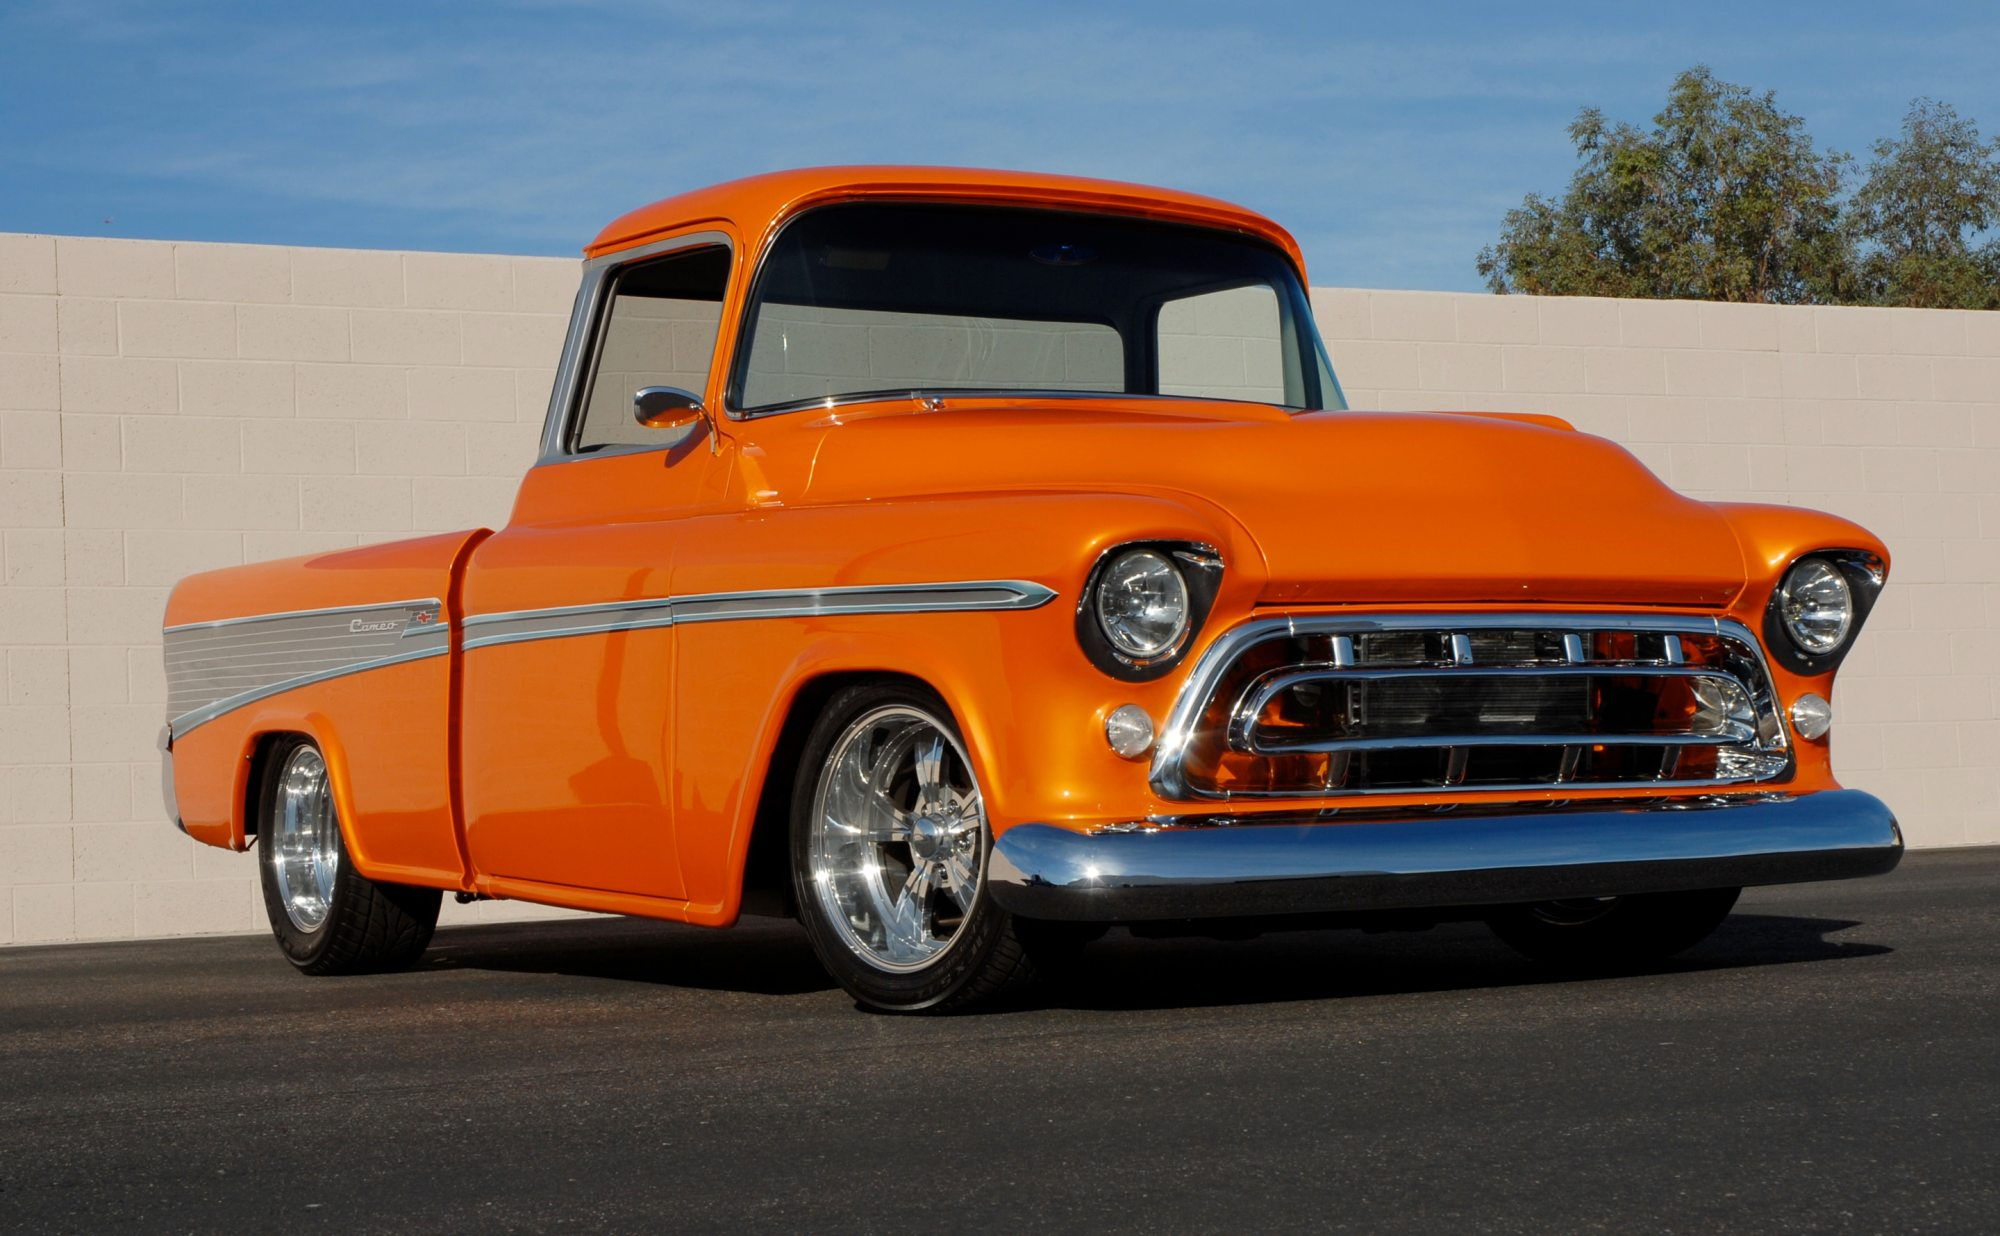 hight resolution of this 1957 chevrolet cameo pickup finished in full custom orange pearl paint sold for 159 500 in scottsdale arizona in 2007